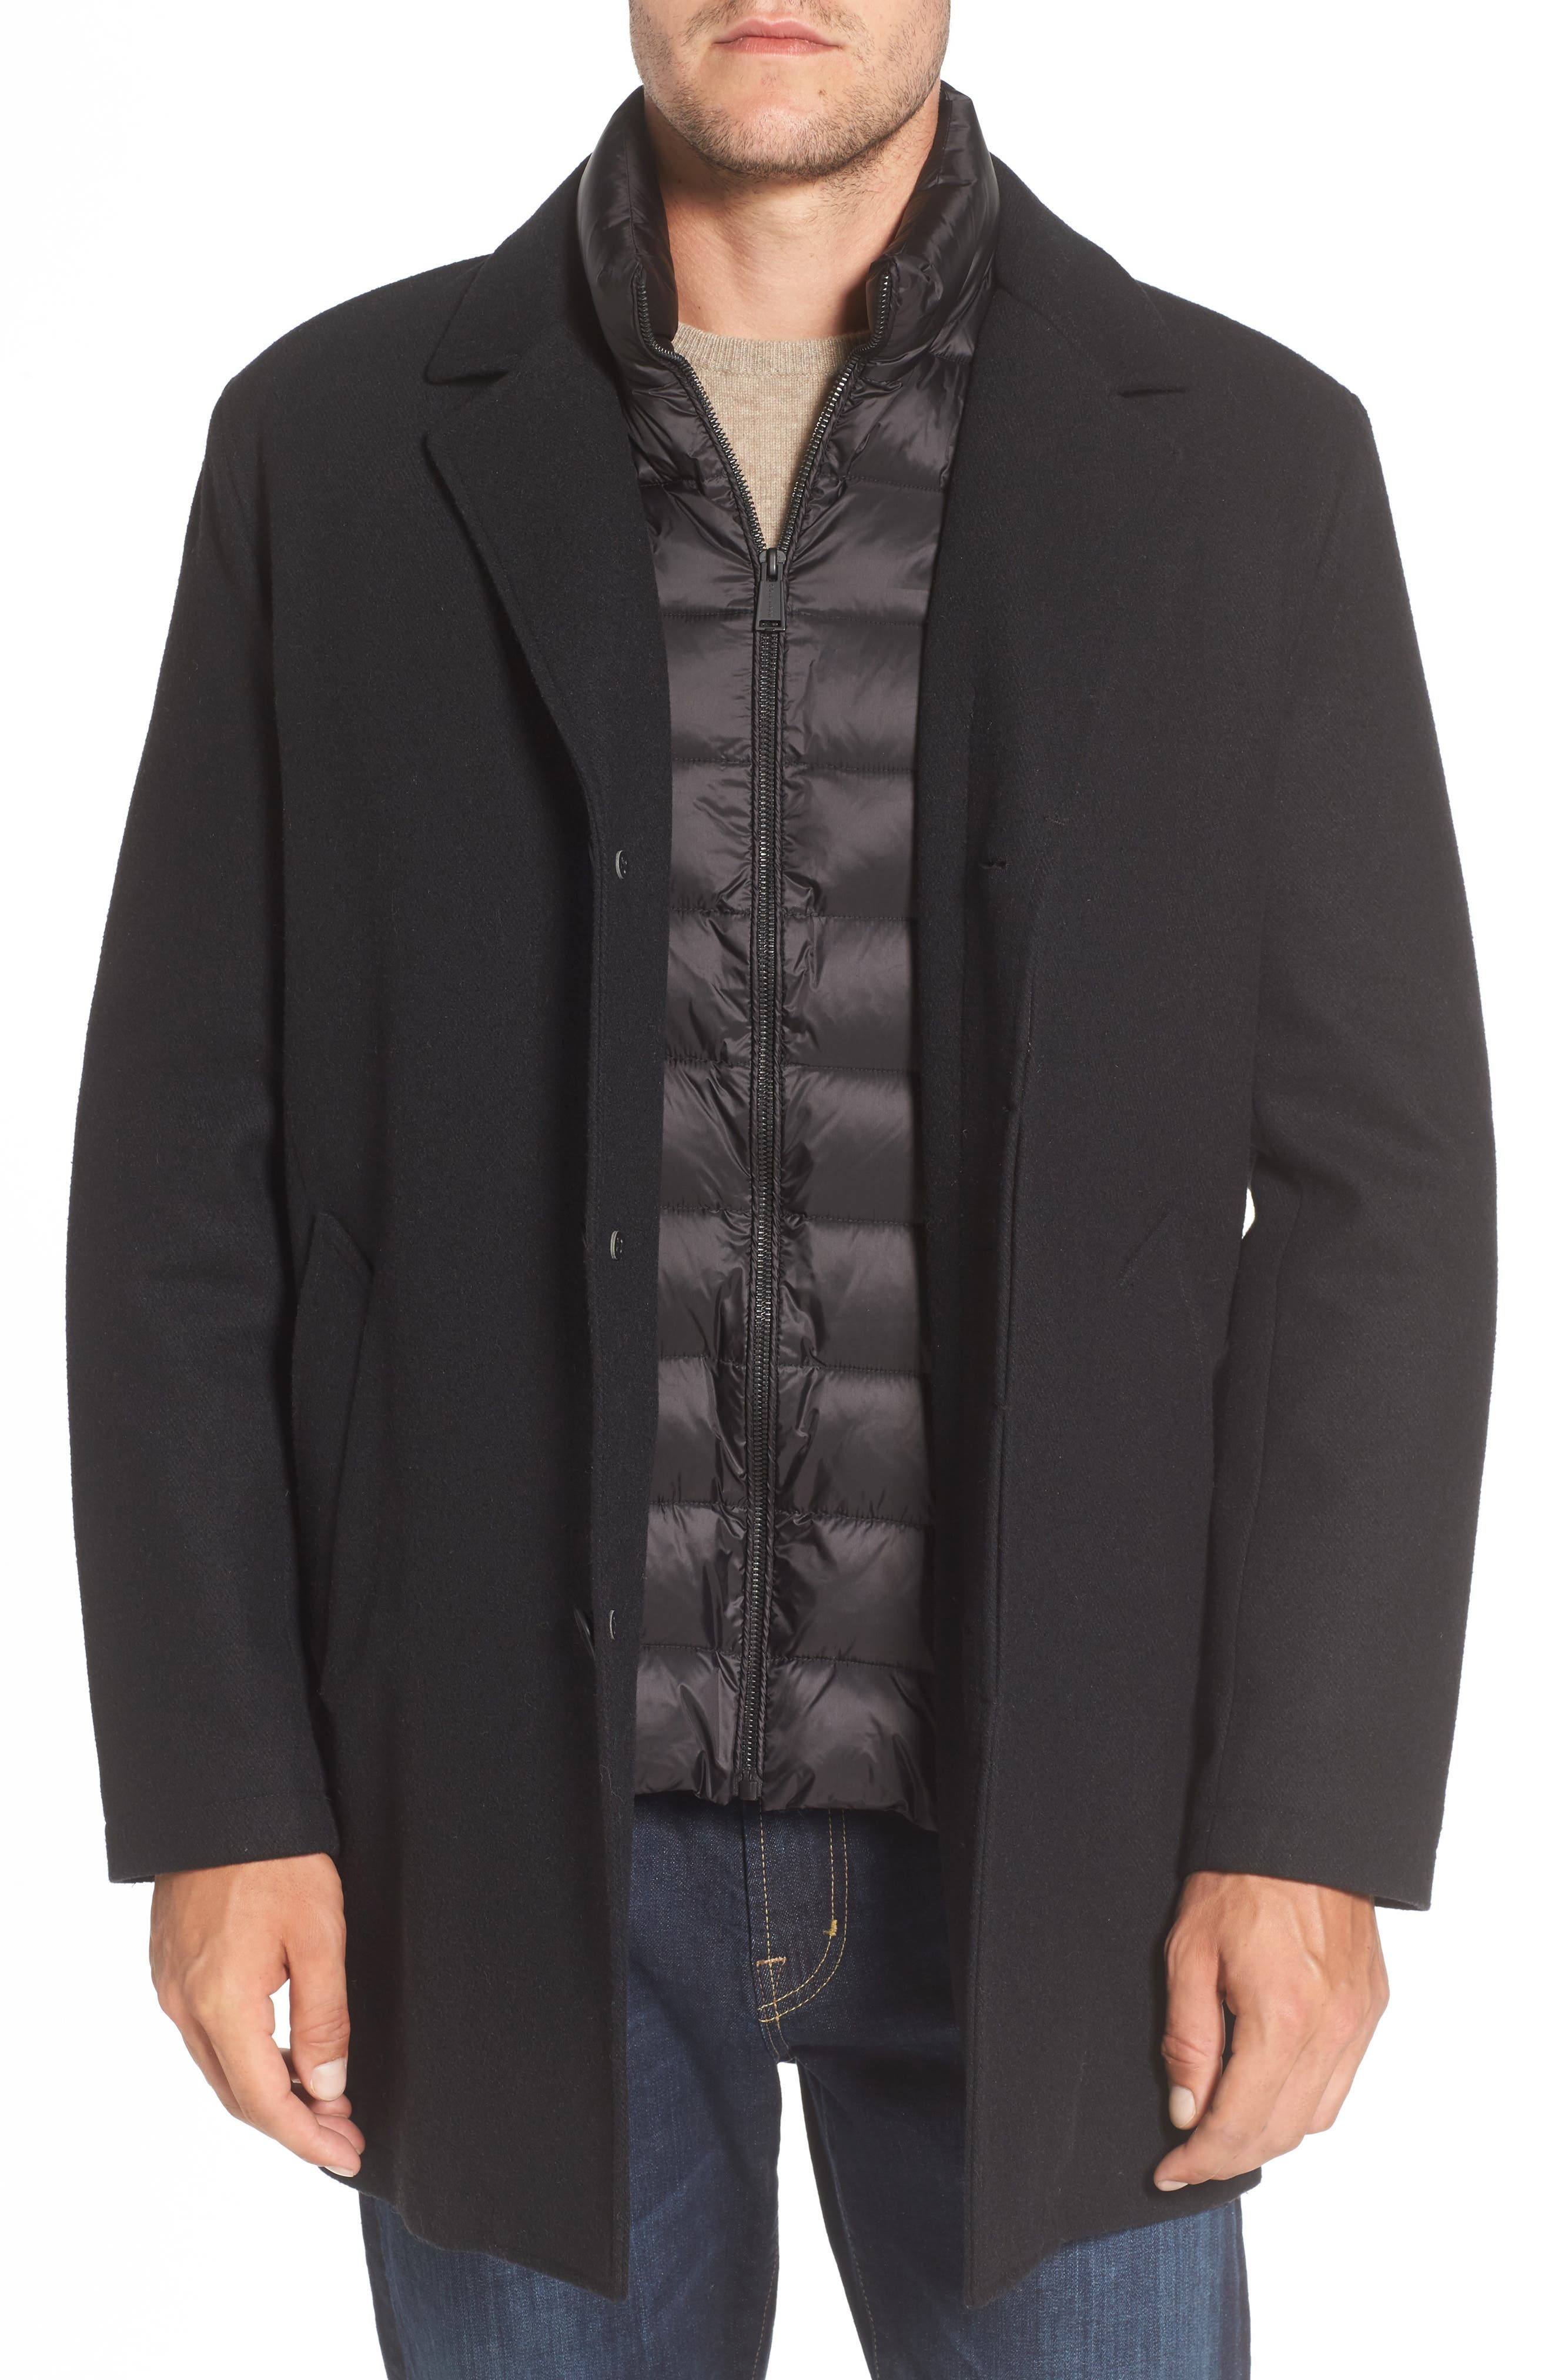 Main Image - Cole Haan Water Repellent Jacket with Inset Bib & Faux Fur Lining